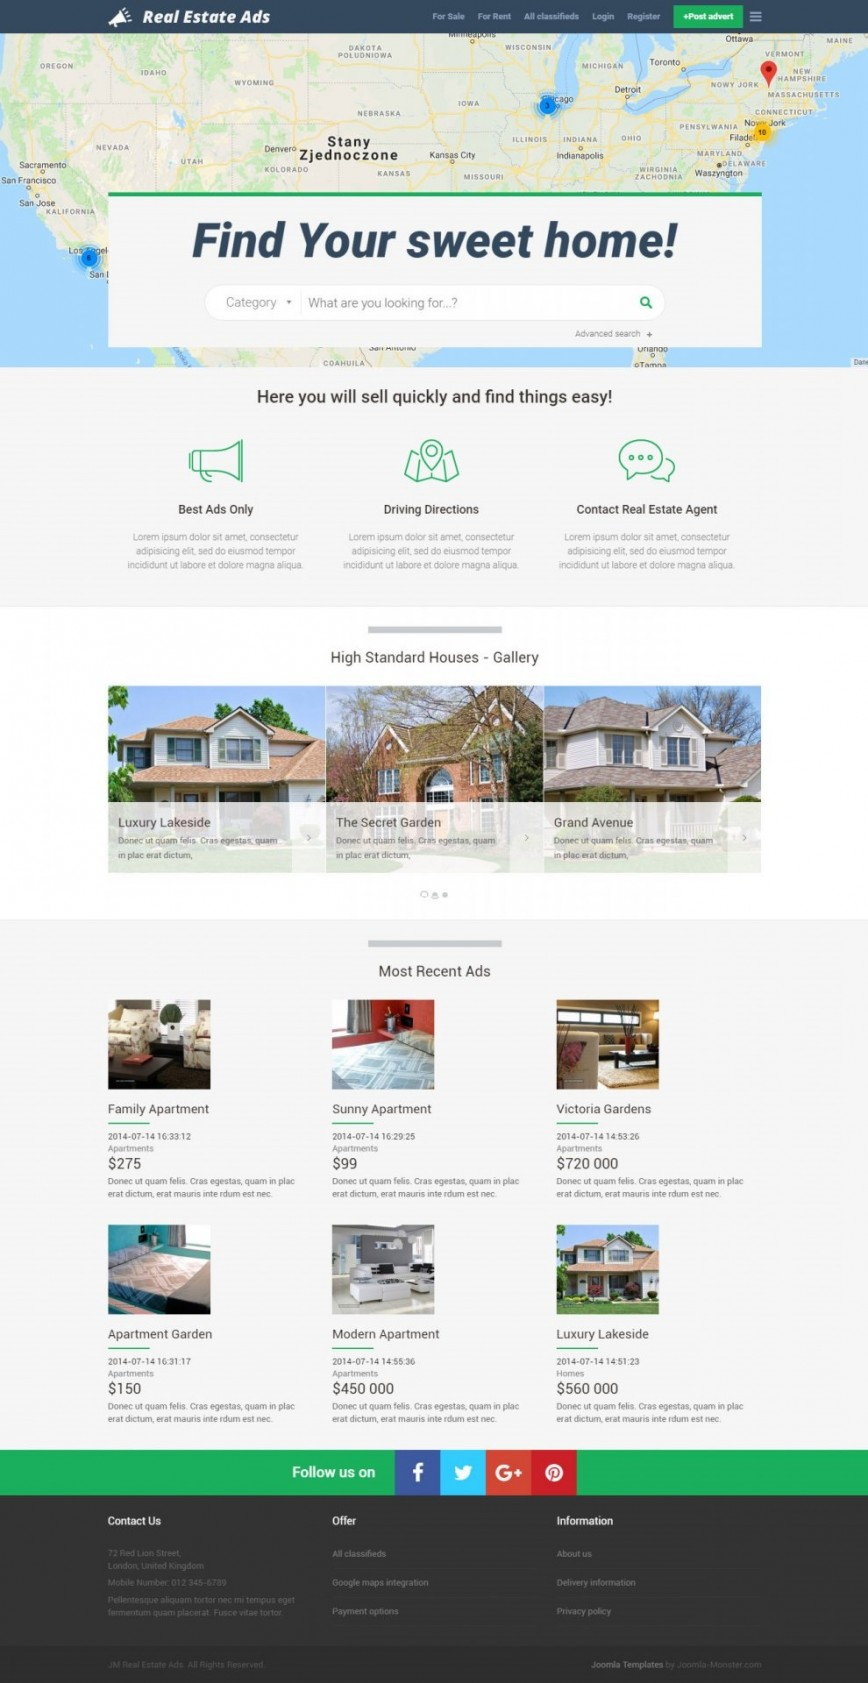 004 Imposing Real Estate Advertising Template High Def  Facebook Ad Craigslist868